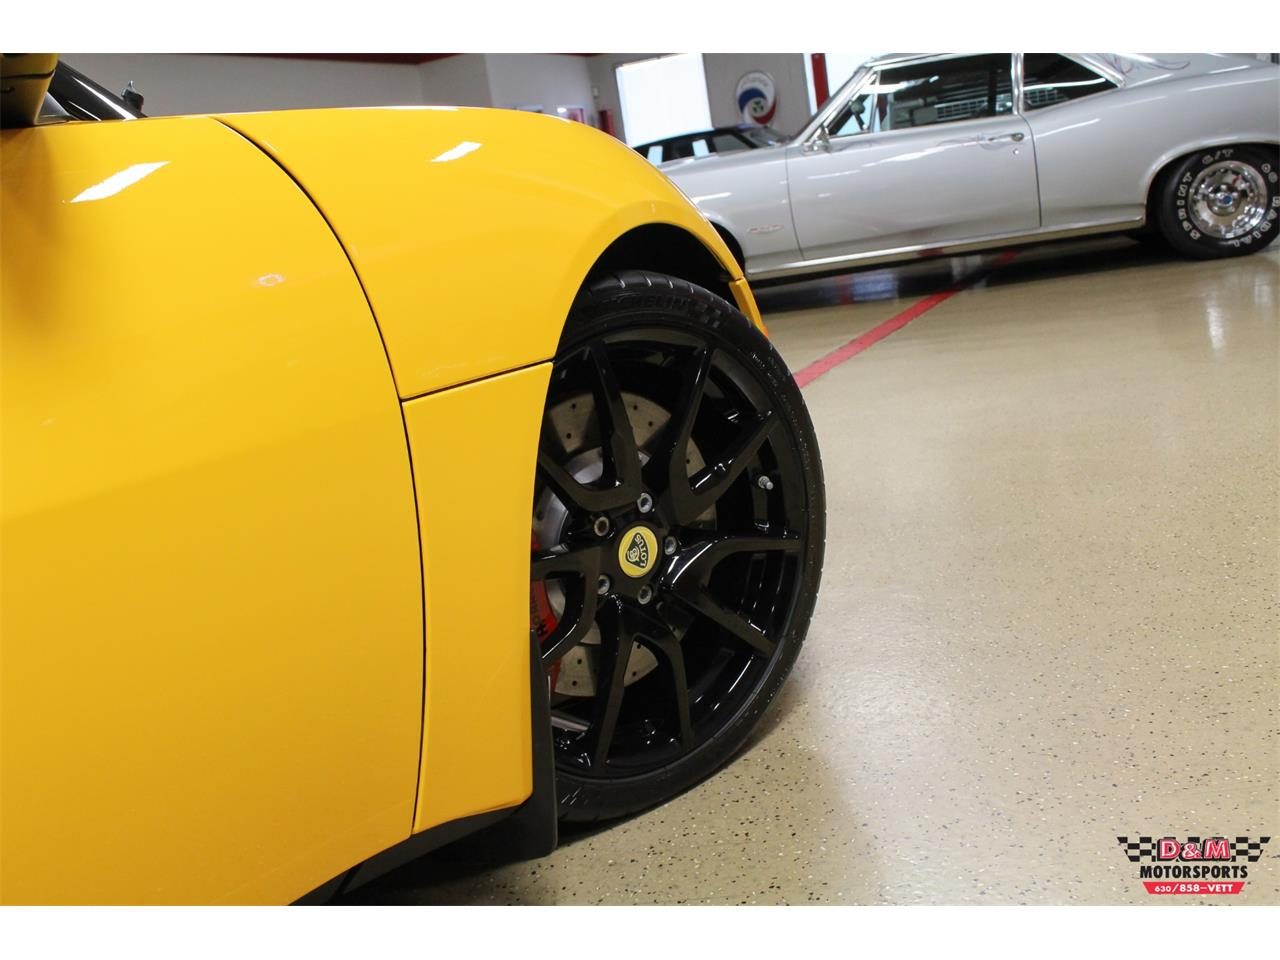 Large Picture of '17 Lotus Evora located in Illinois Offered by D & M Motorsports - OY1K